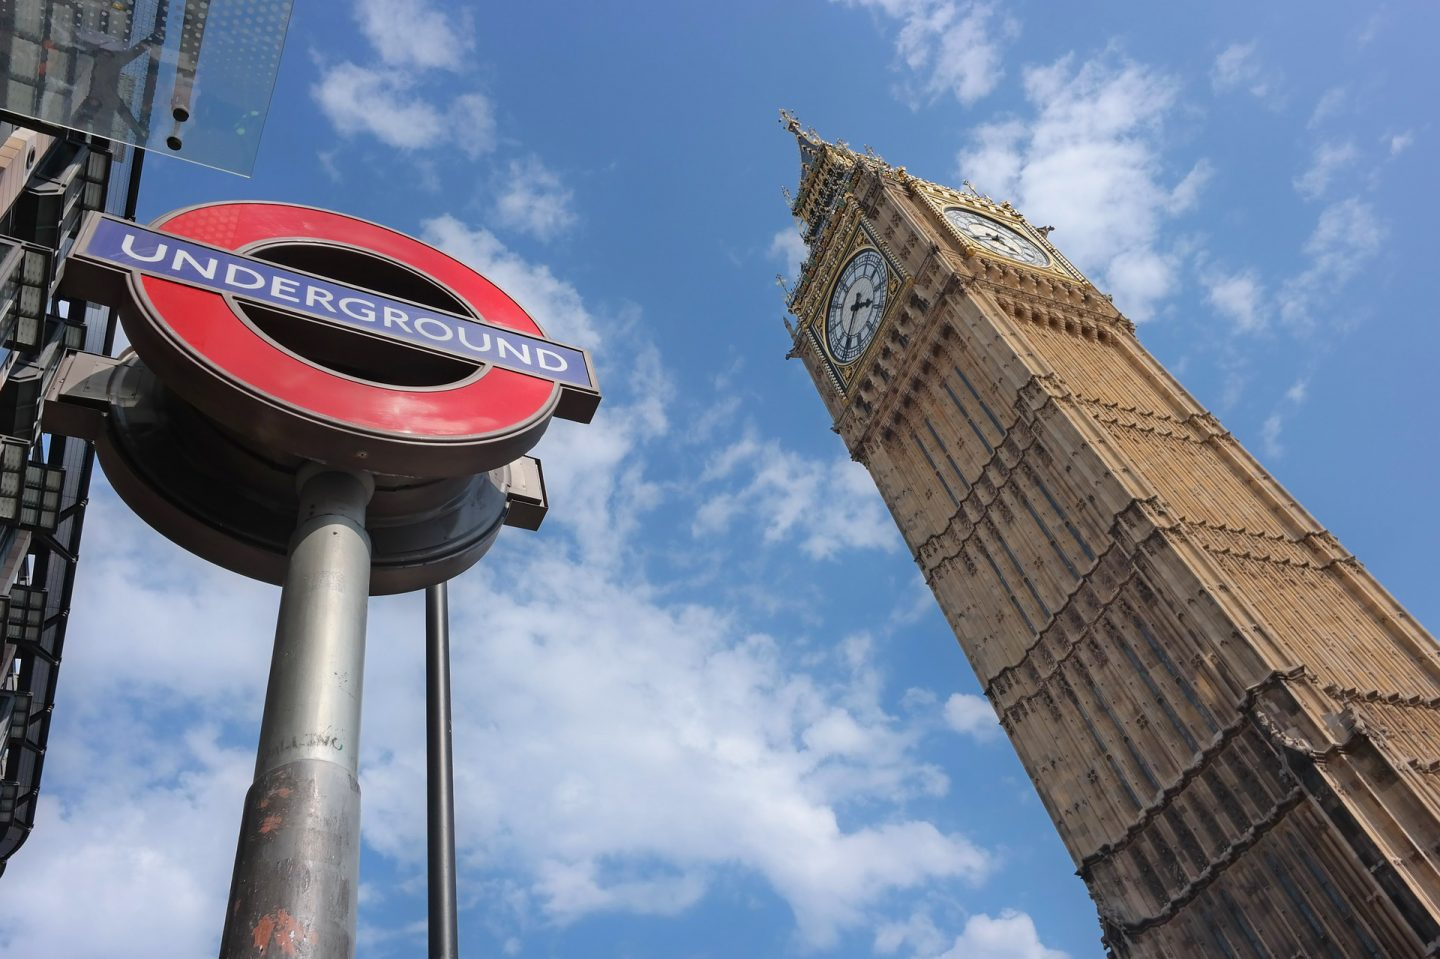 How to get around London: Oyster card, Travel card or Contactless?